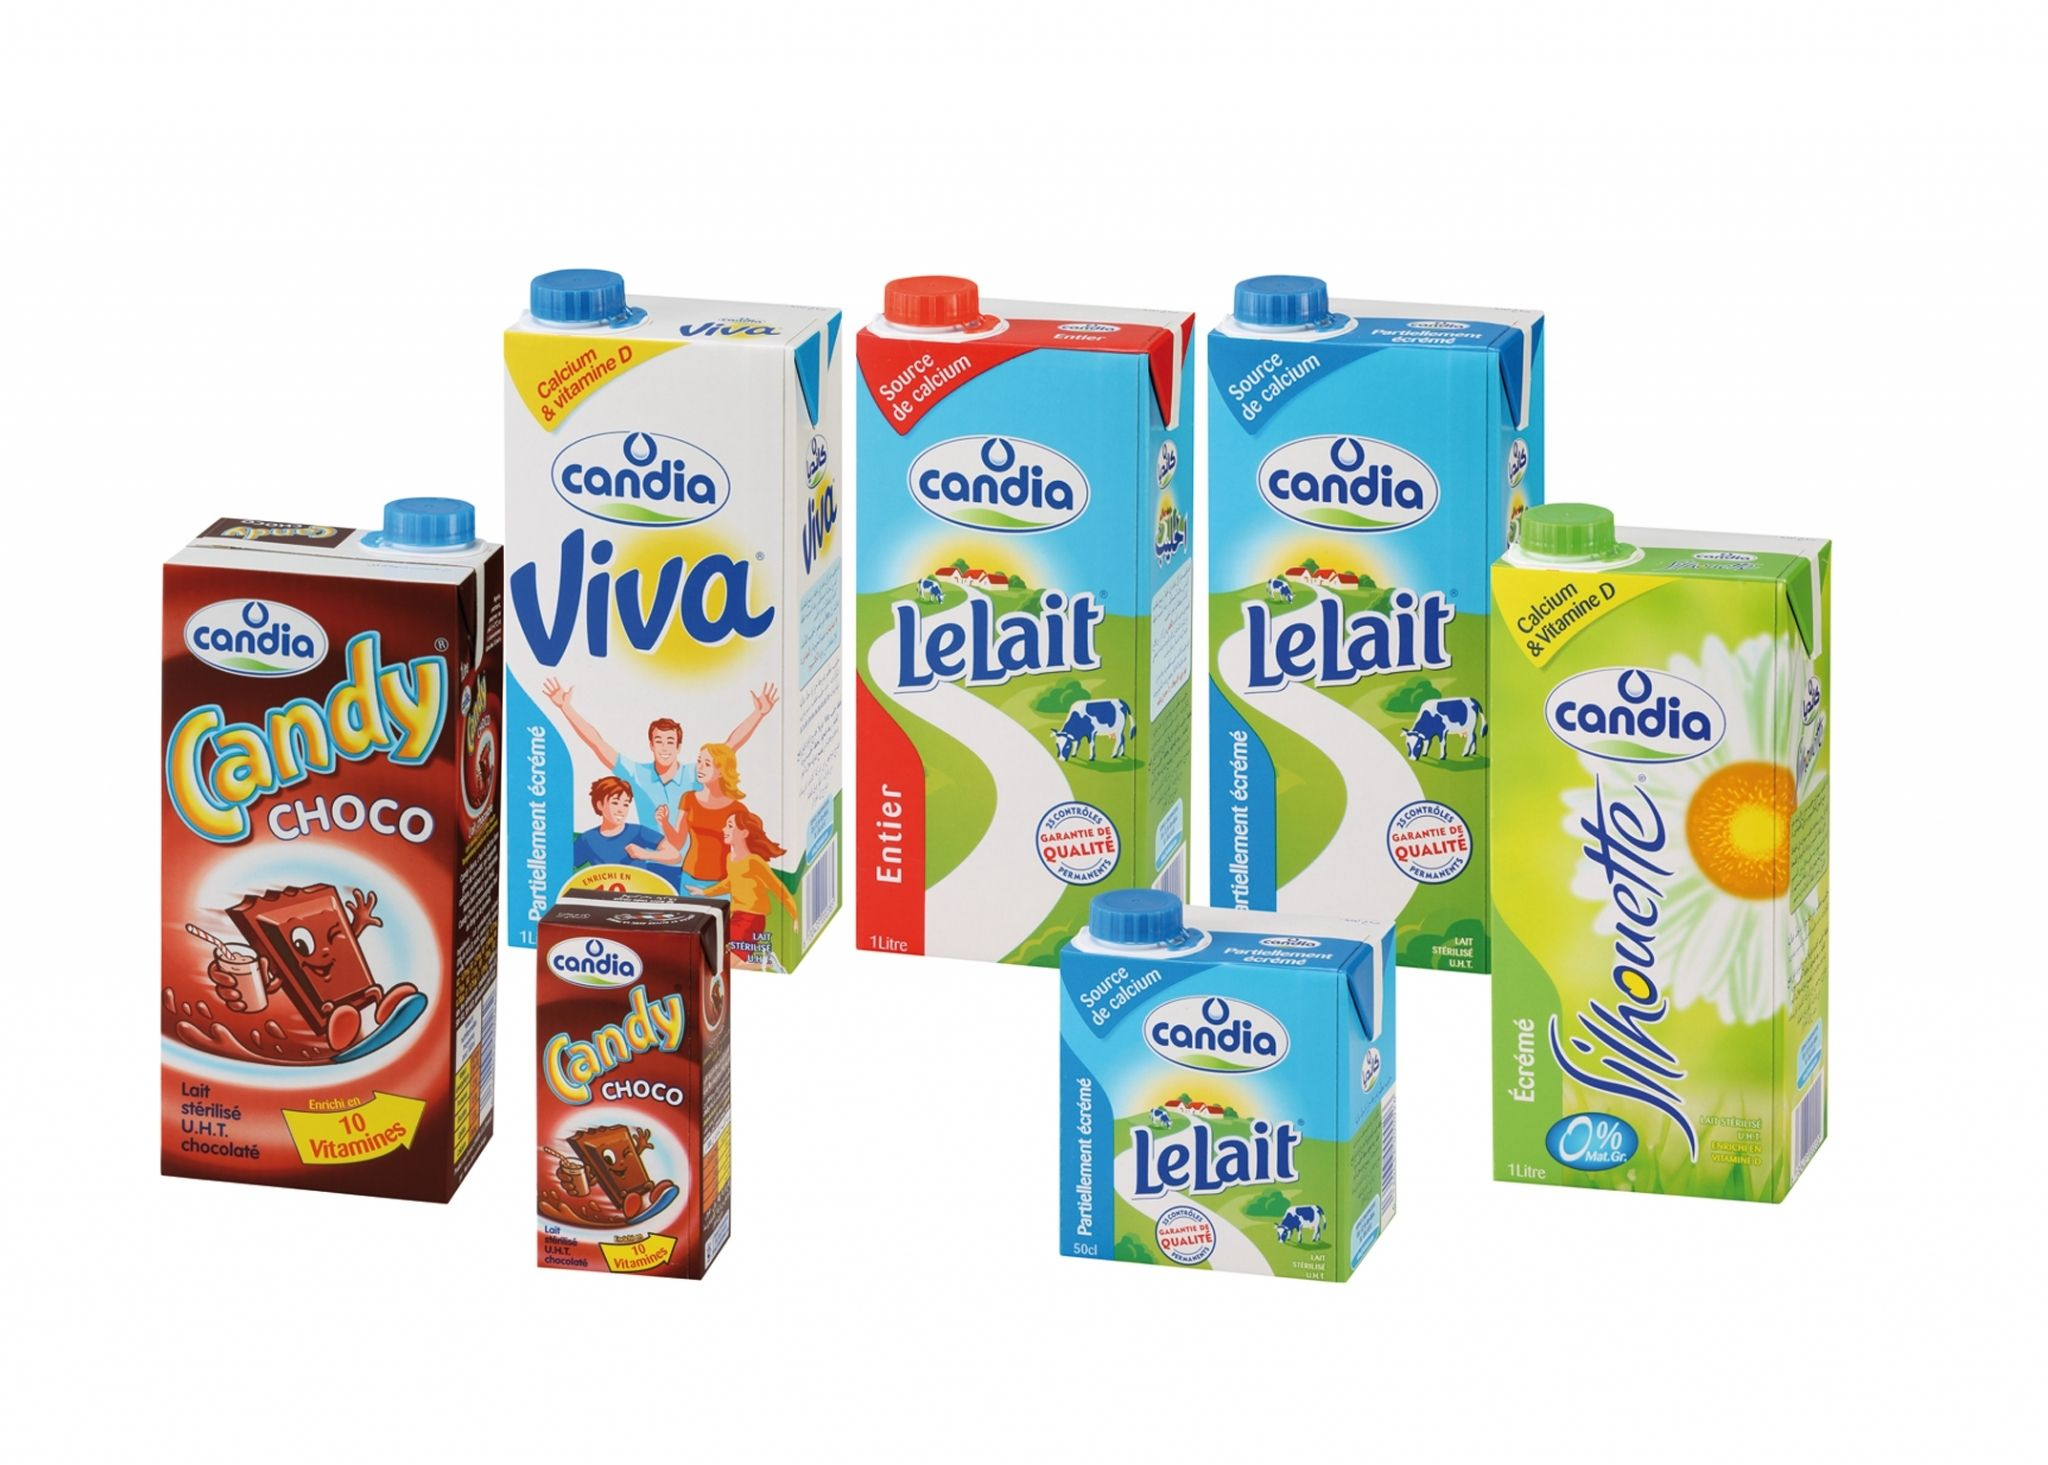 #TchinLait was founded in 1954 as a family business. To begin with, the company specialised in soft drinks. As more and more multi-national corporations gained a foothold in the #Algerian market, Tchin Lait changed its strategy and has since focused on UHT milk and milk products. In 1999 a franchise agreement was signed with #Candia, part of the #French #Sodiaal group of companies. #SigCombibloc